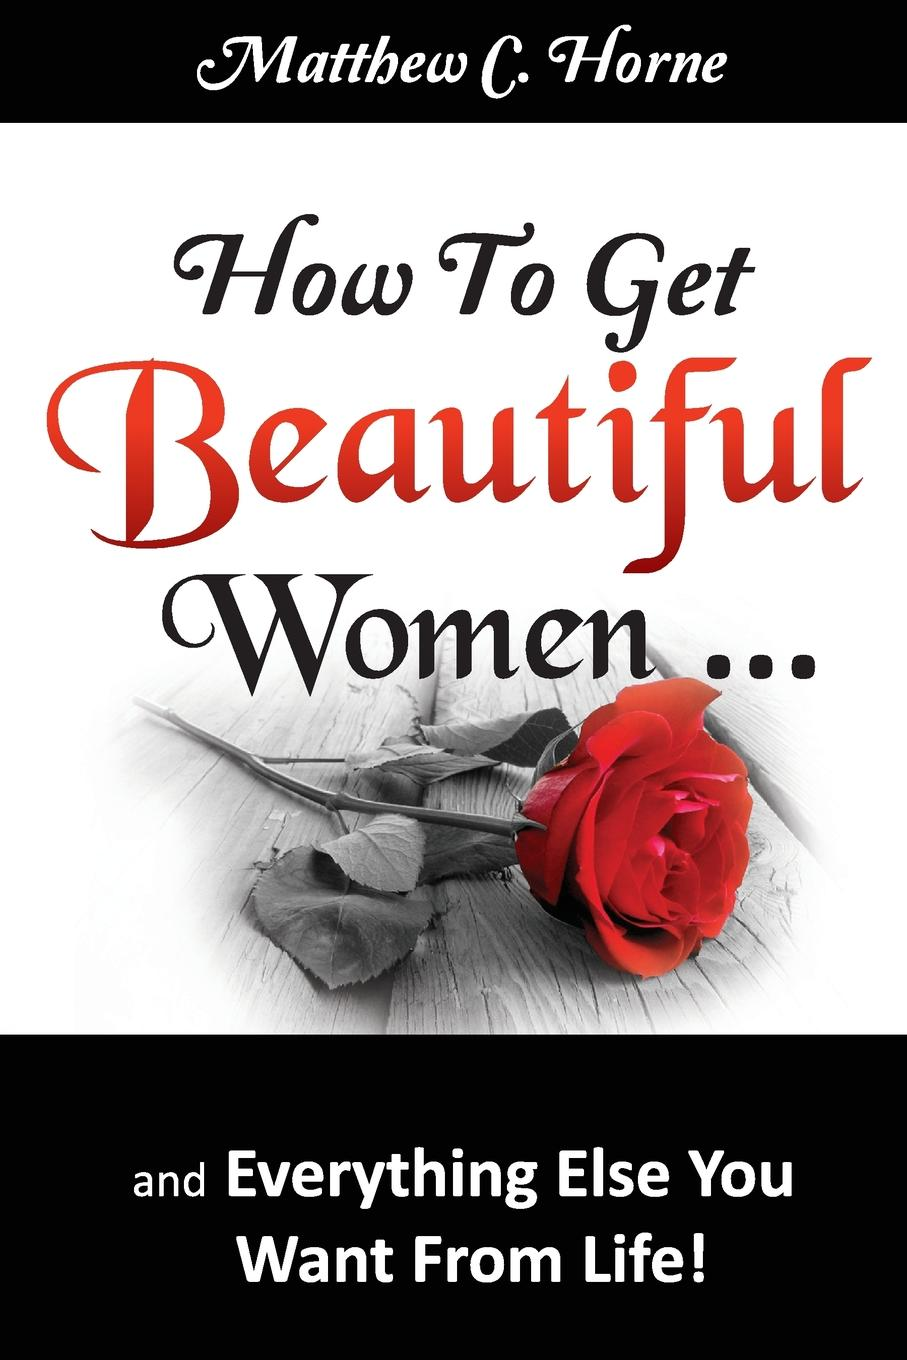 Matthew C. Horne How To Get Beautiful Women and Everything Else You Want from Life